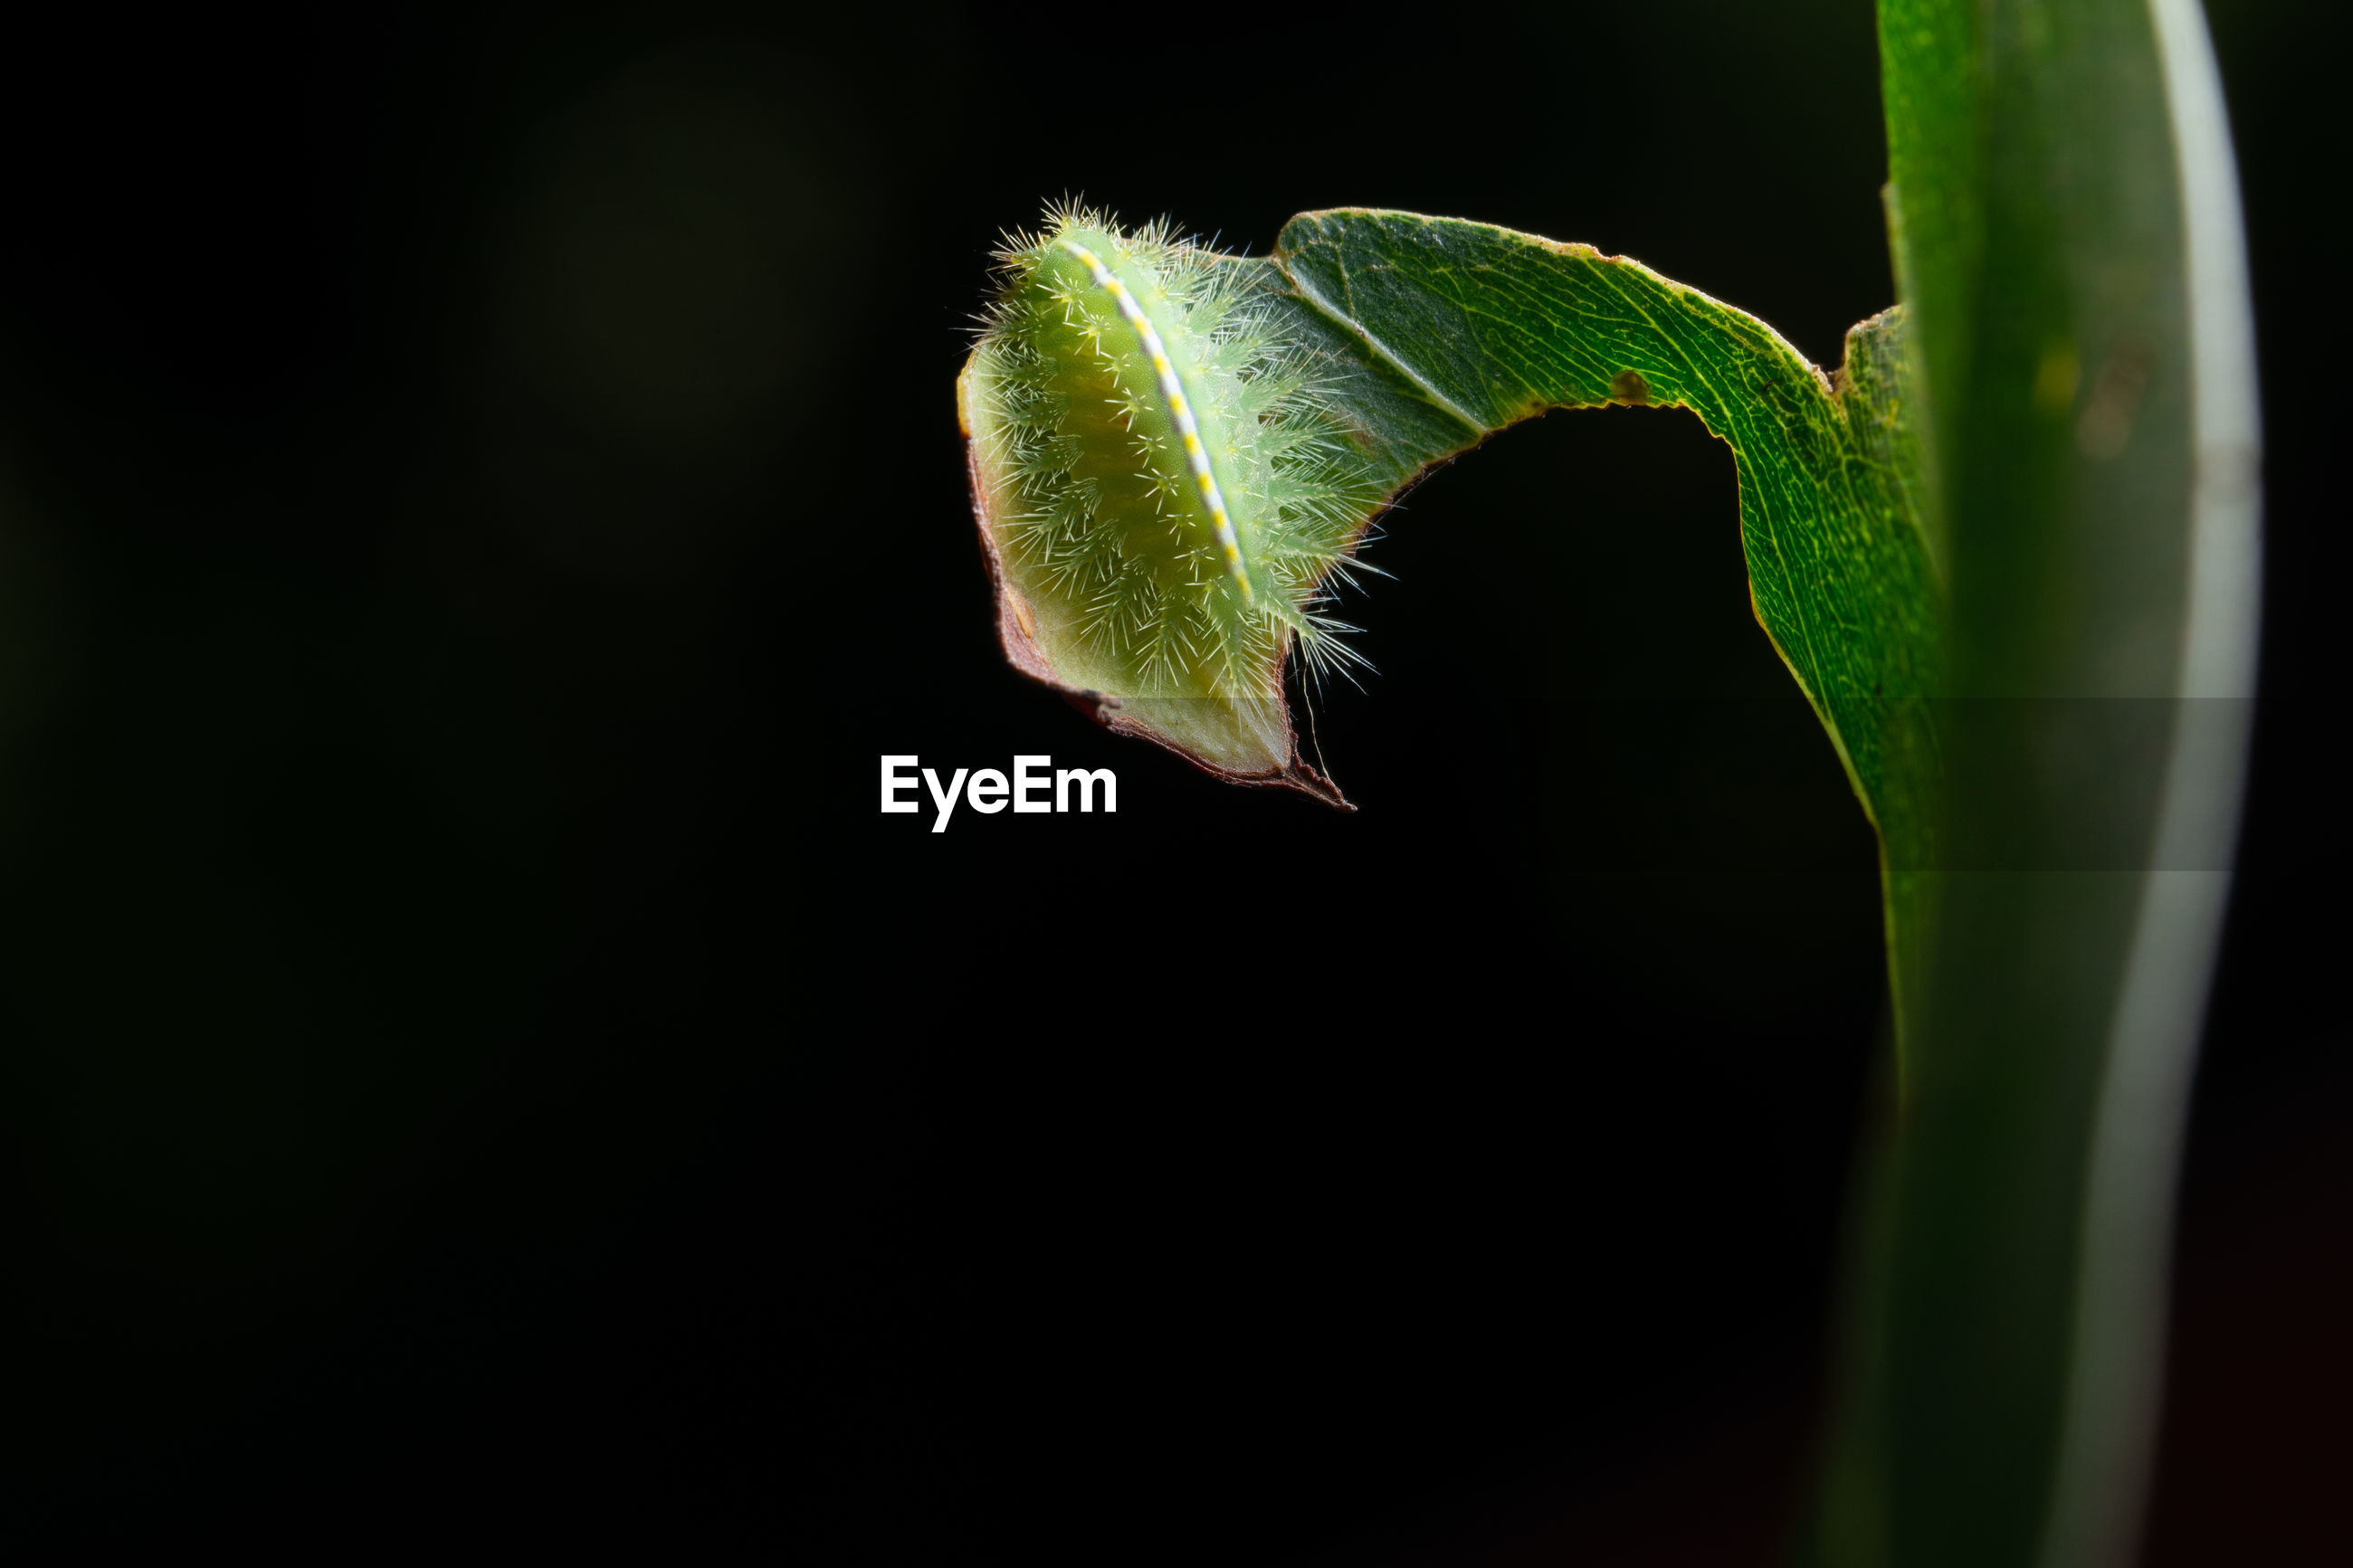 Close-up of insect on plant at night